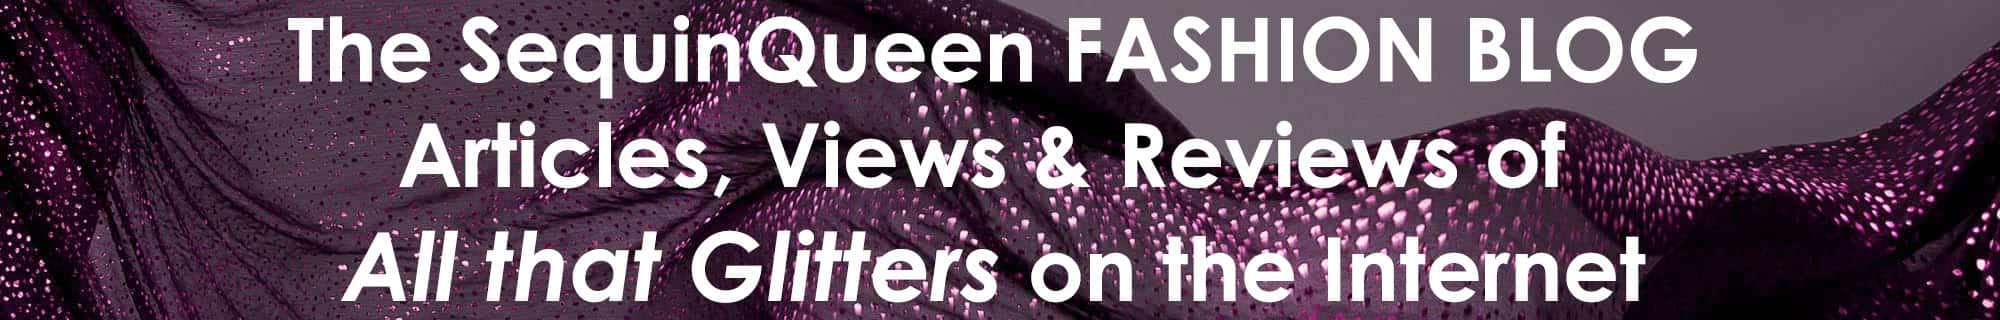 The SequinQueen Fashion Blog